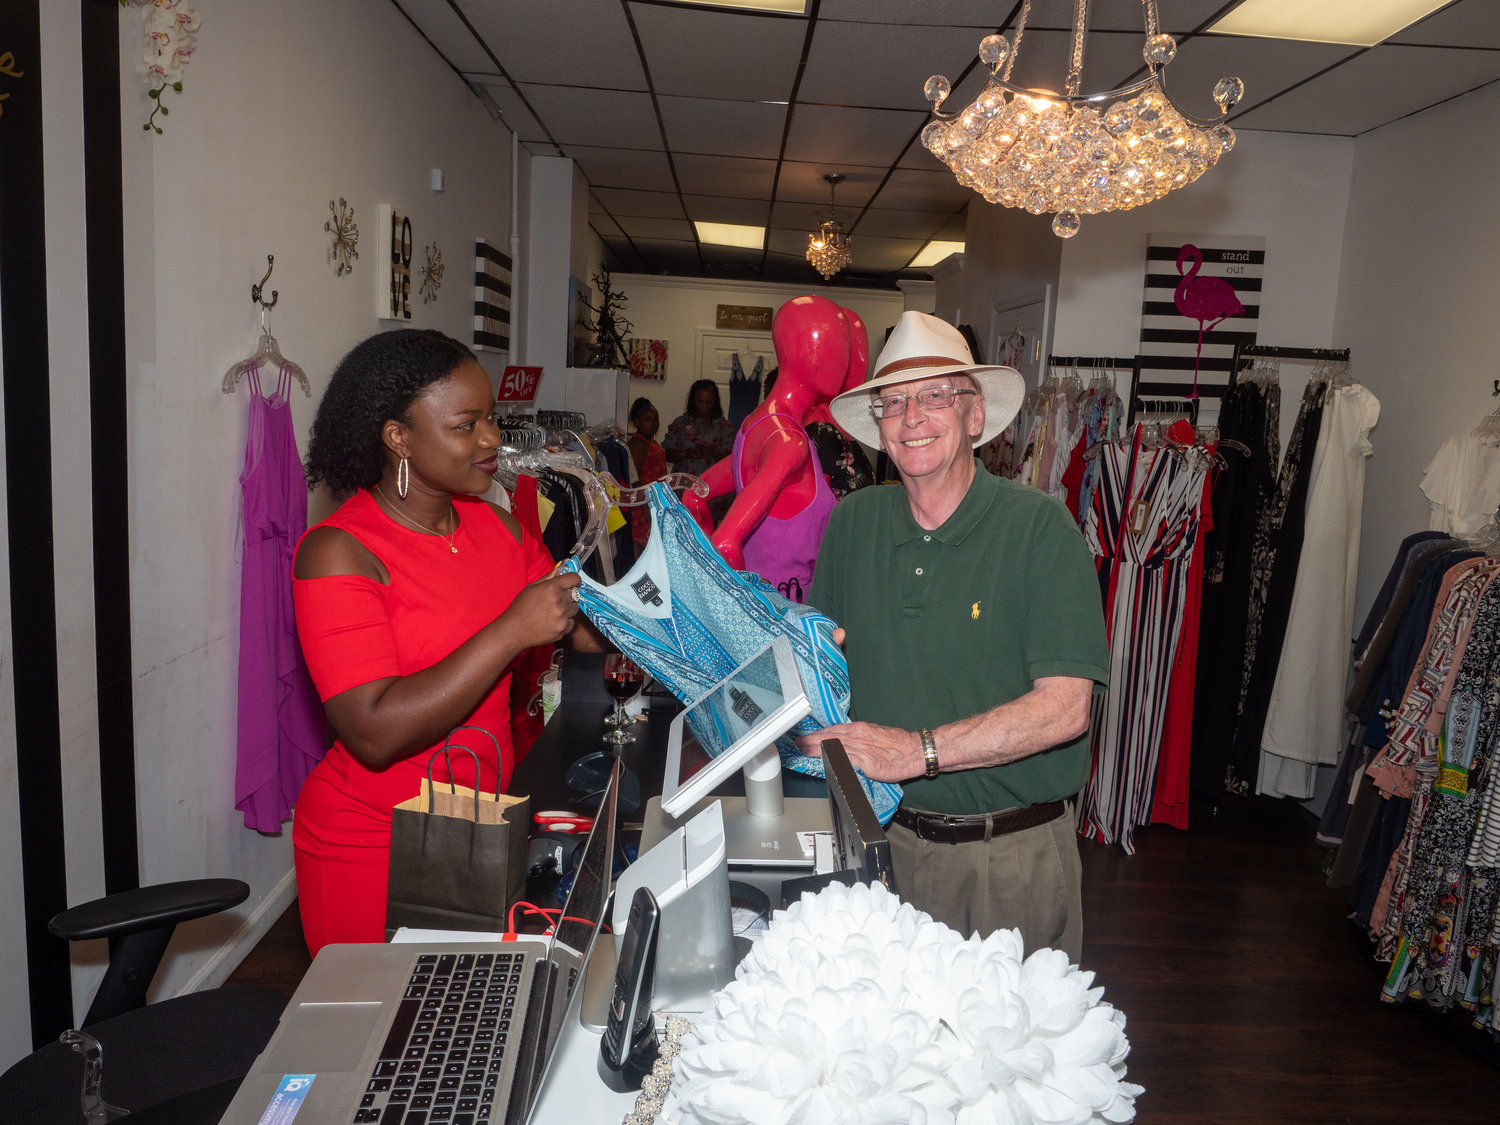 West Hempstead Chamber of Commerce President Marshall Myers contributed to Pierre's fundraiser.